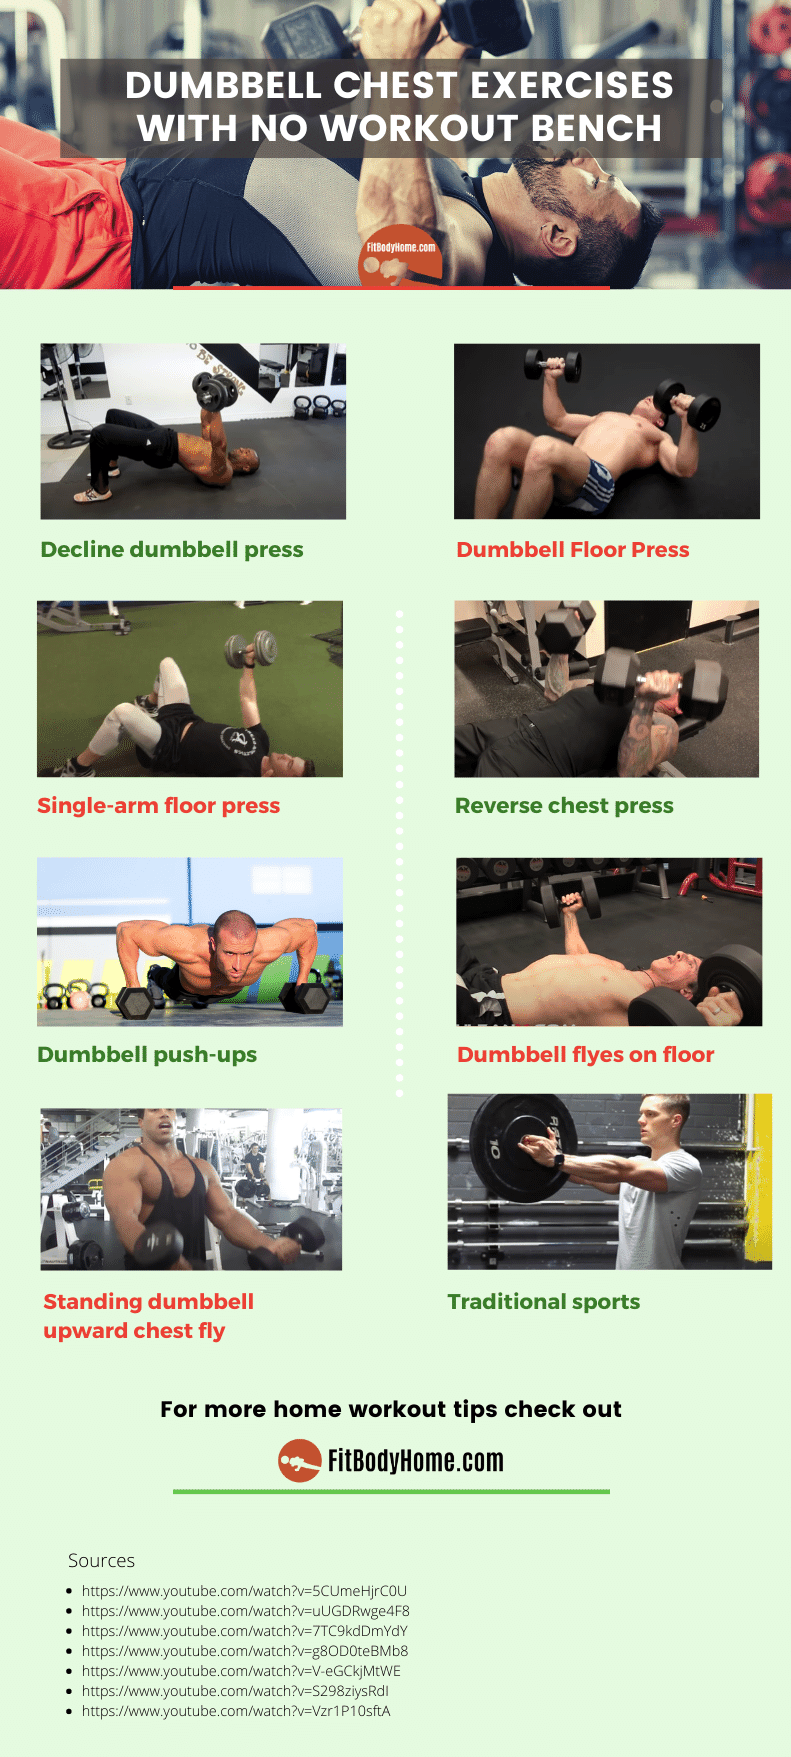 Chest Exercises With Dumbbells at Home Without Bench https